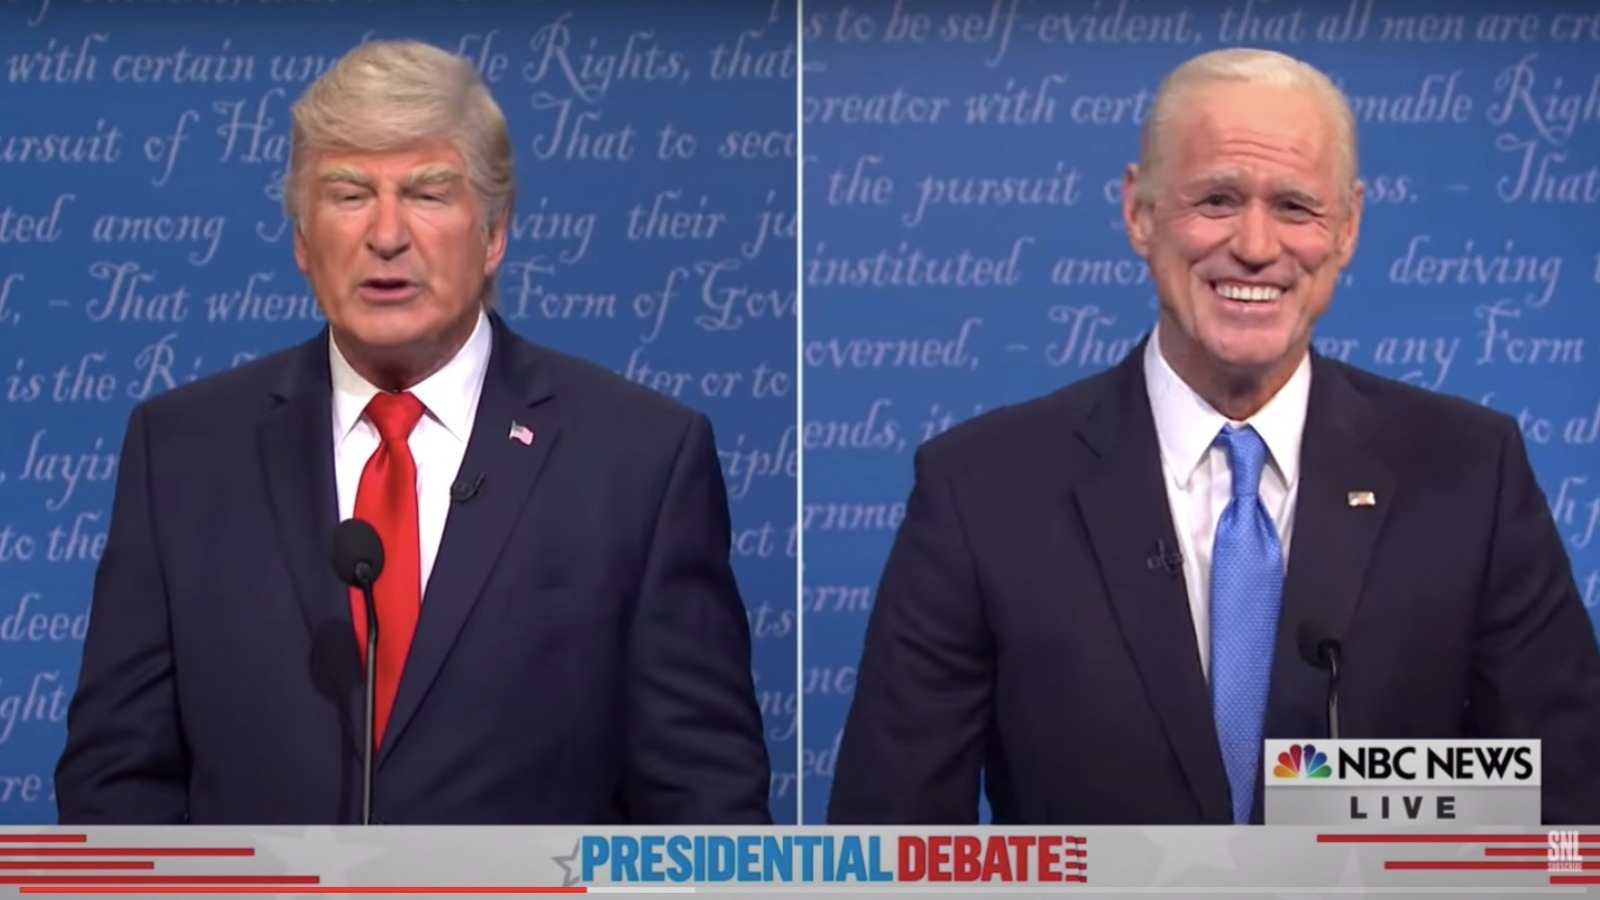 Why fans are once again upset with SNL's latest debate skit